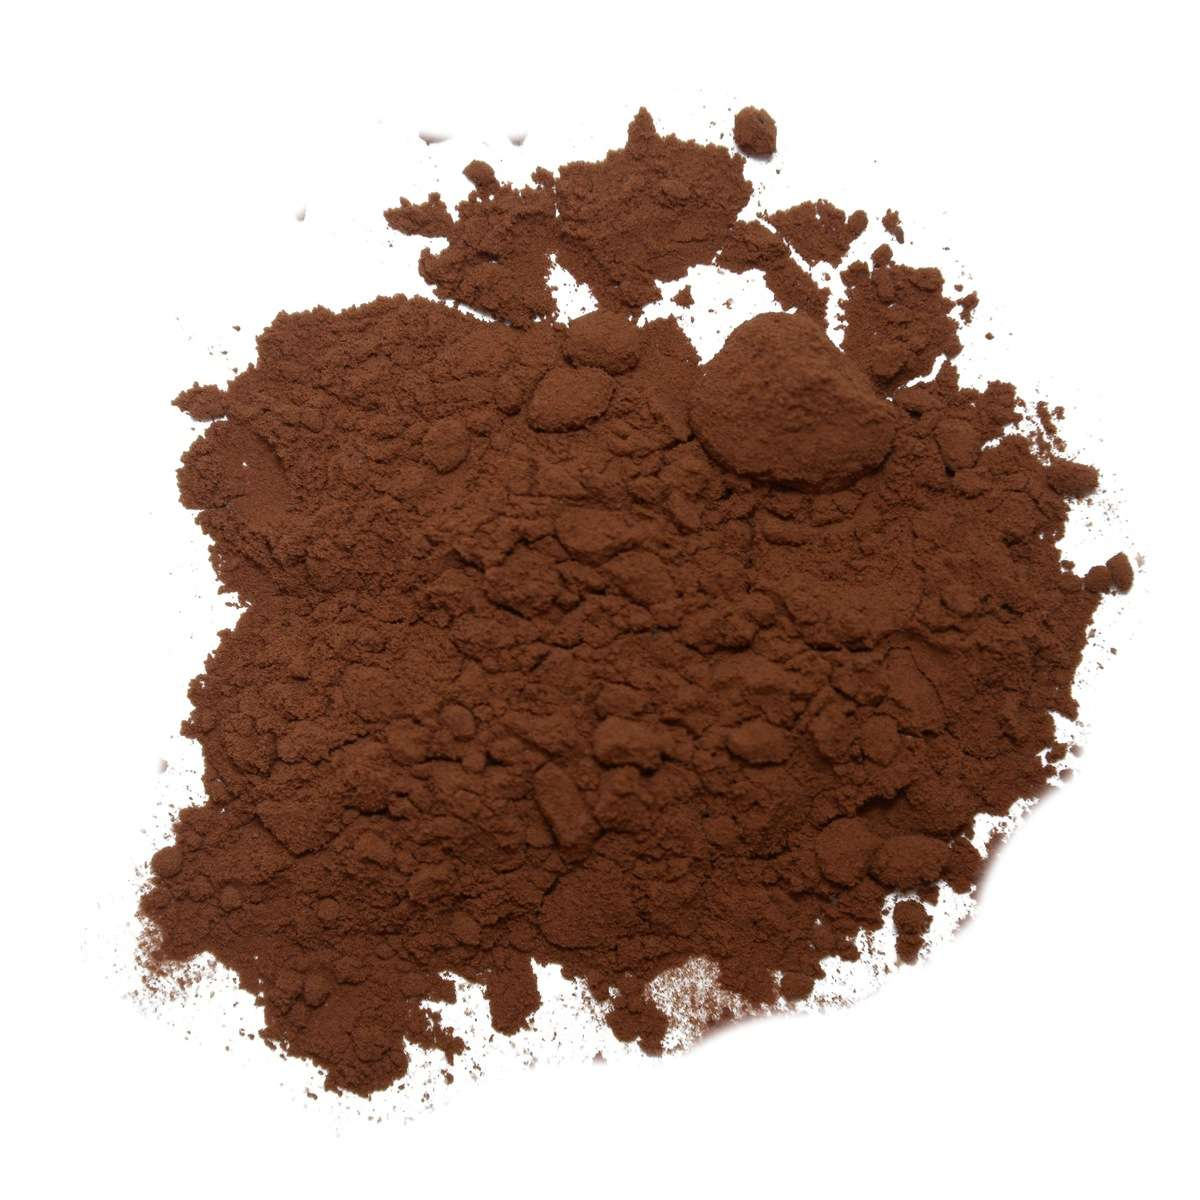 Cocoa Powder: Health Benefits, Uses, Side Effects, Nutritional Value